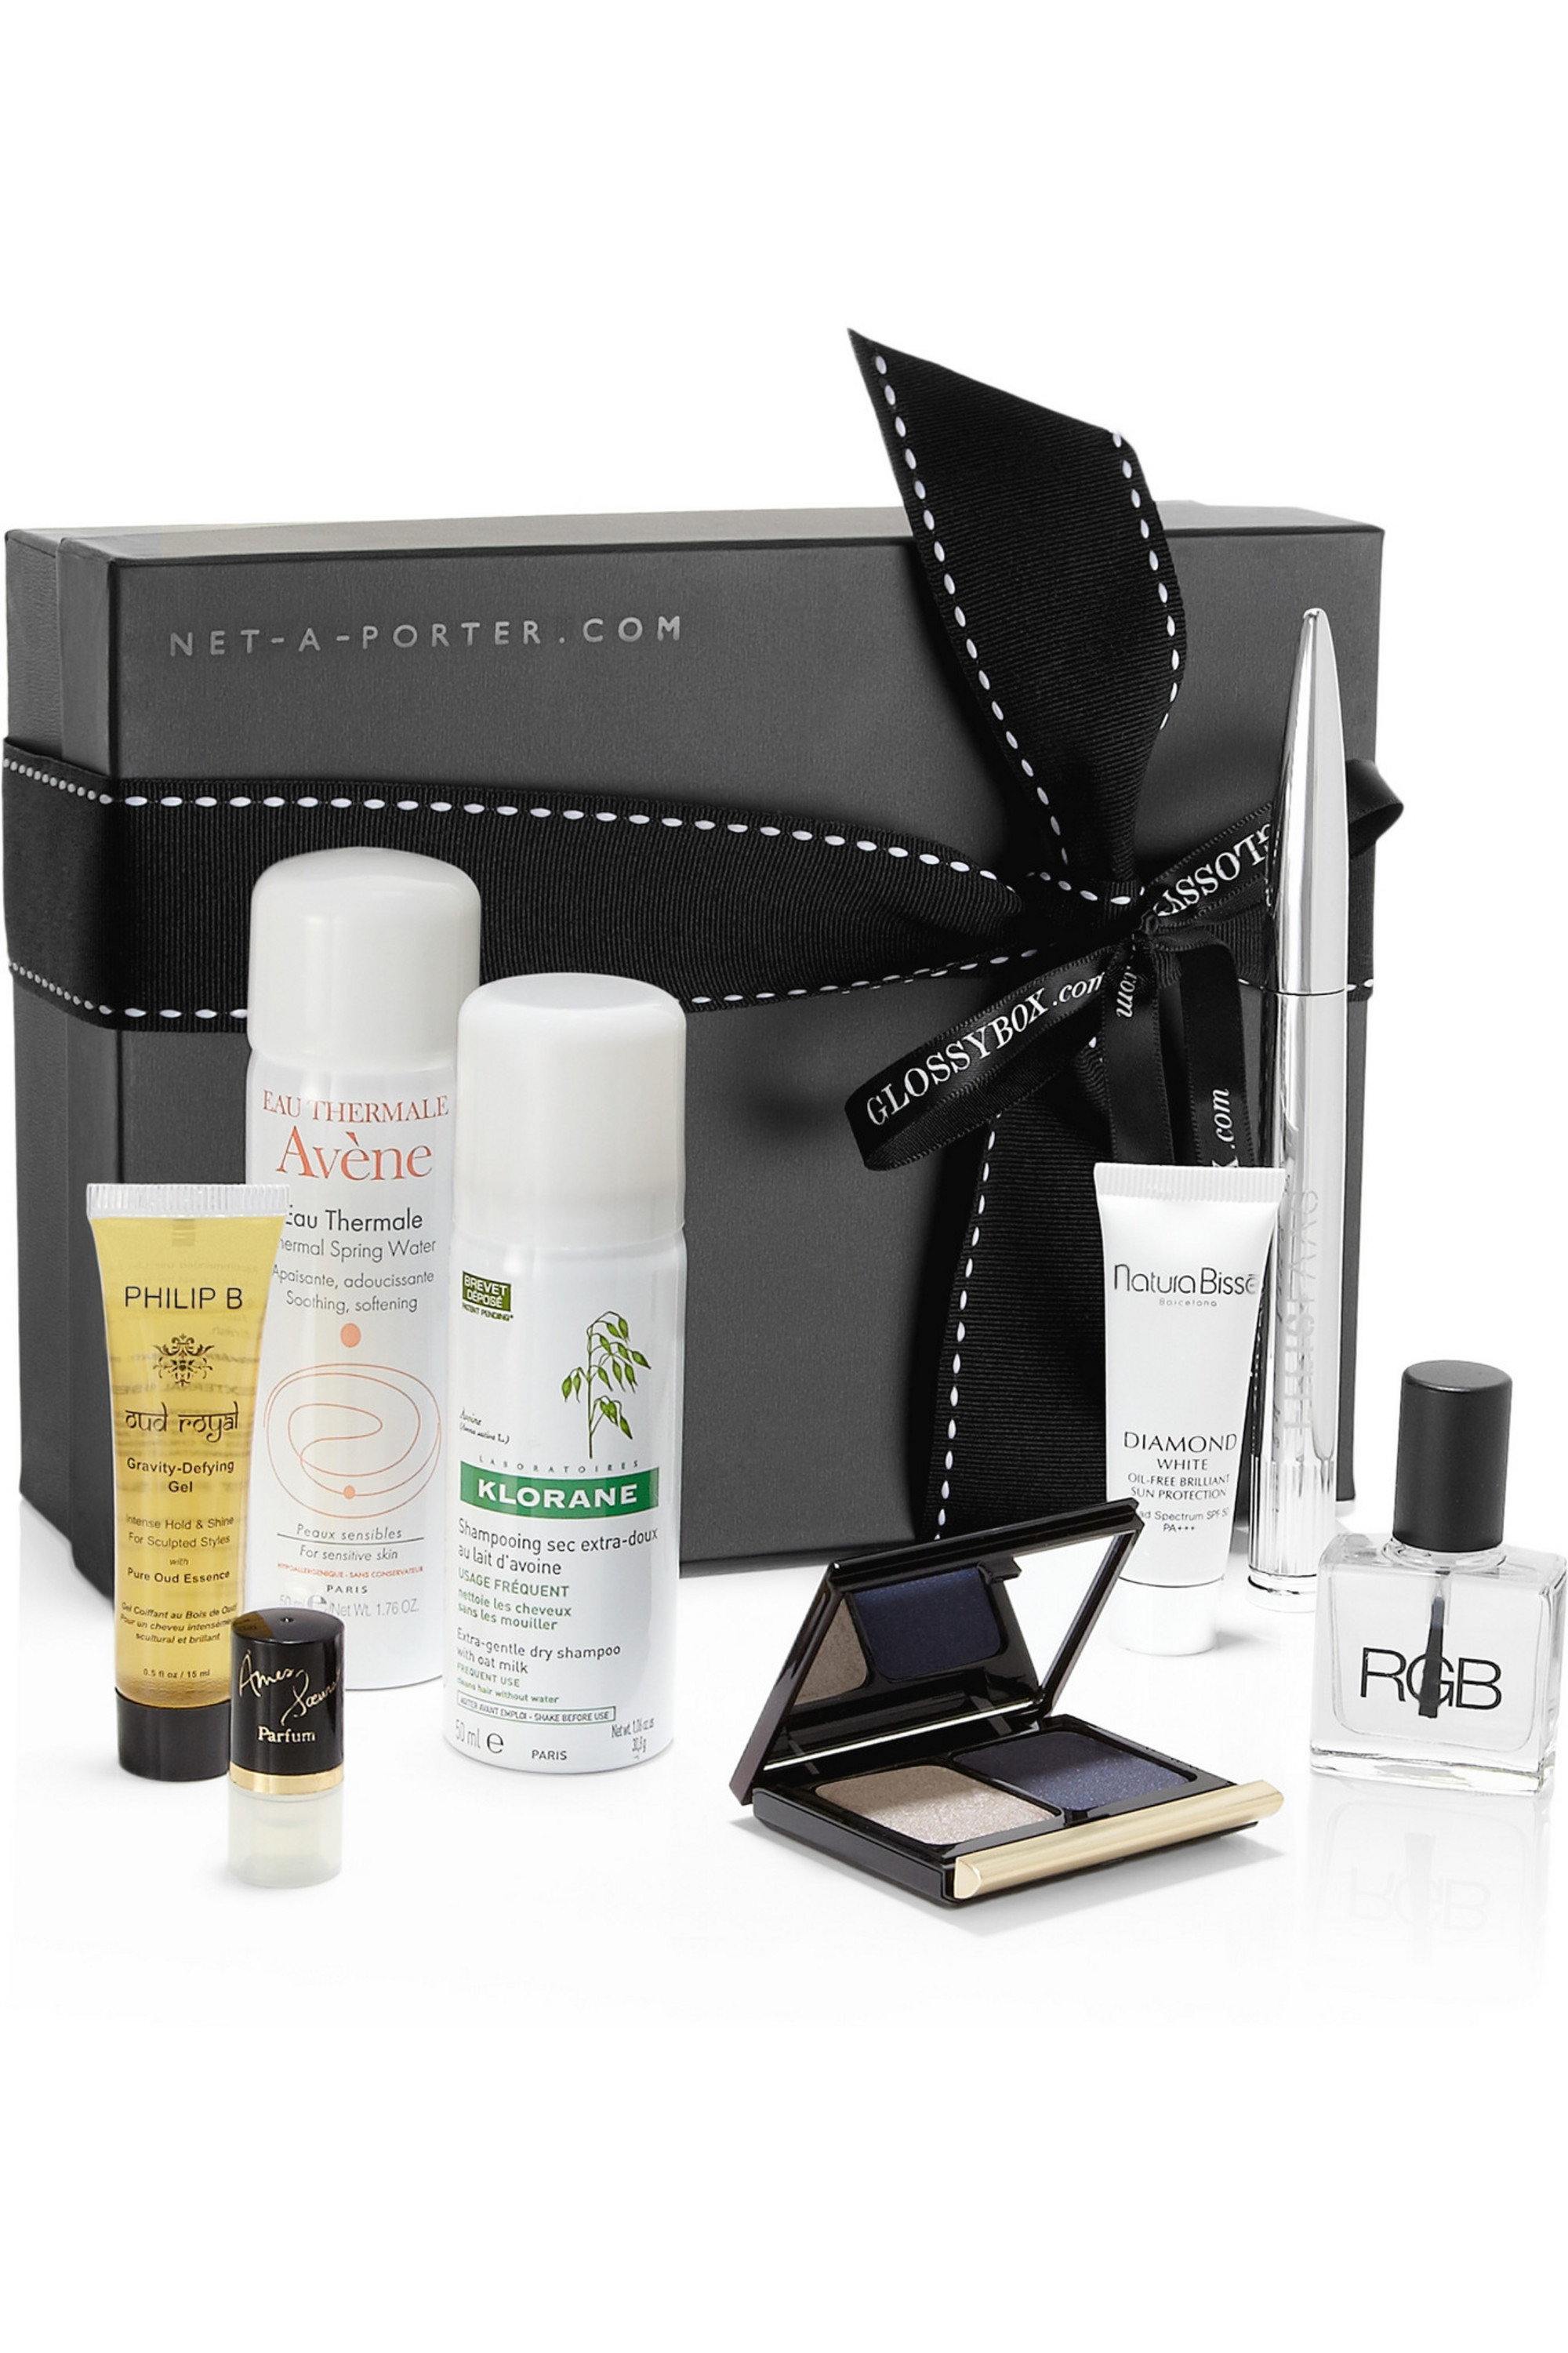 Glossybox for NET-A-PORTER.COM The Luxury Limited Edition Beauty Box